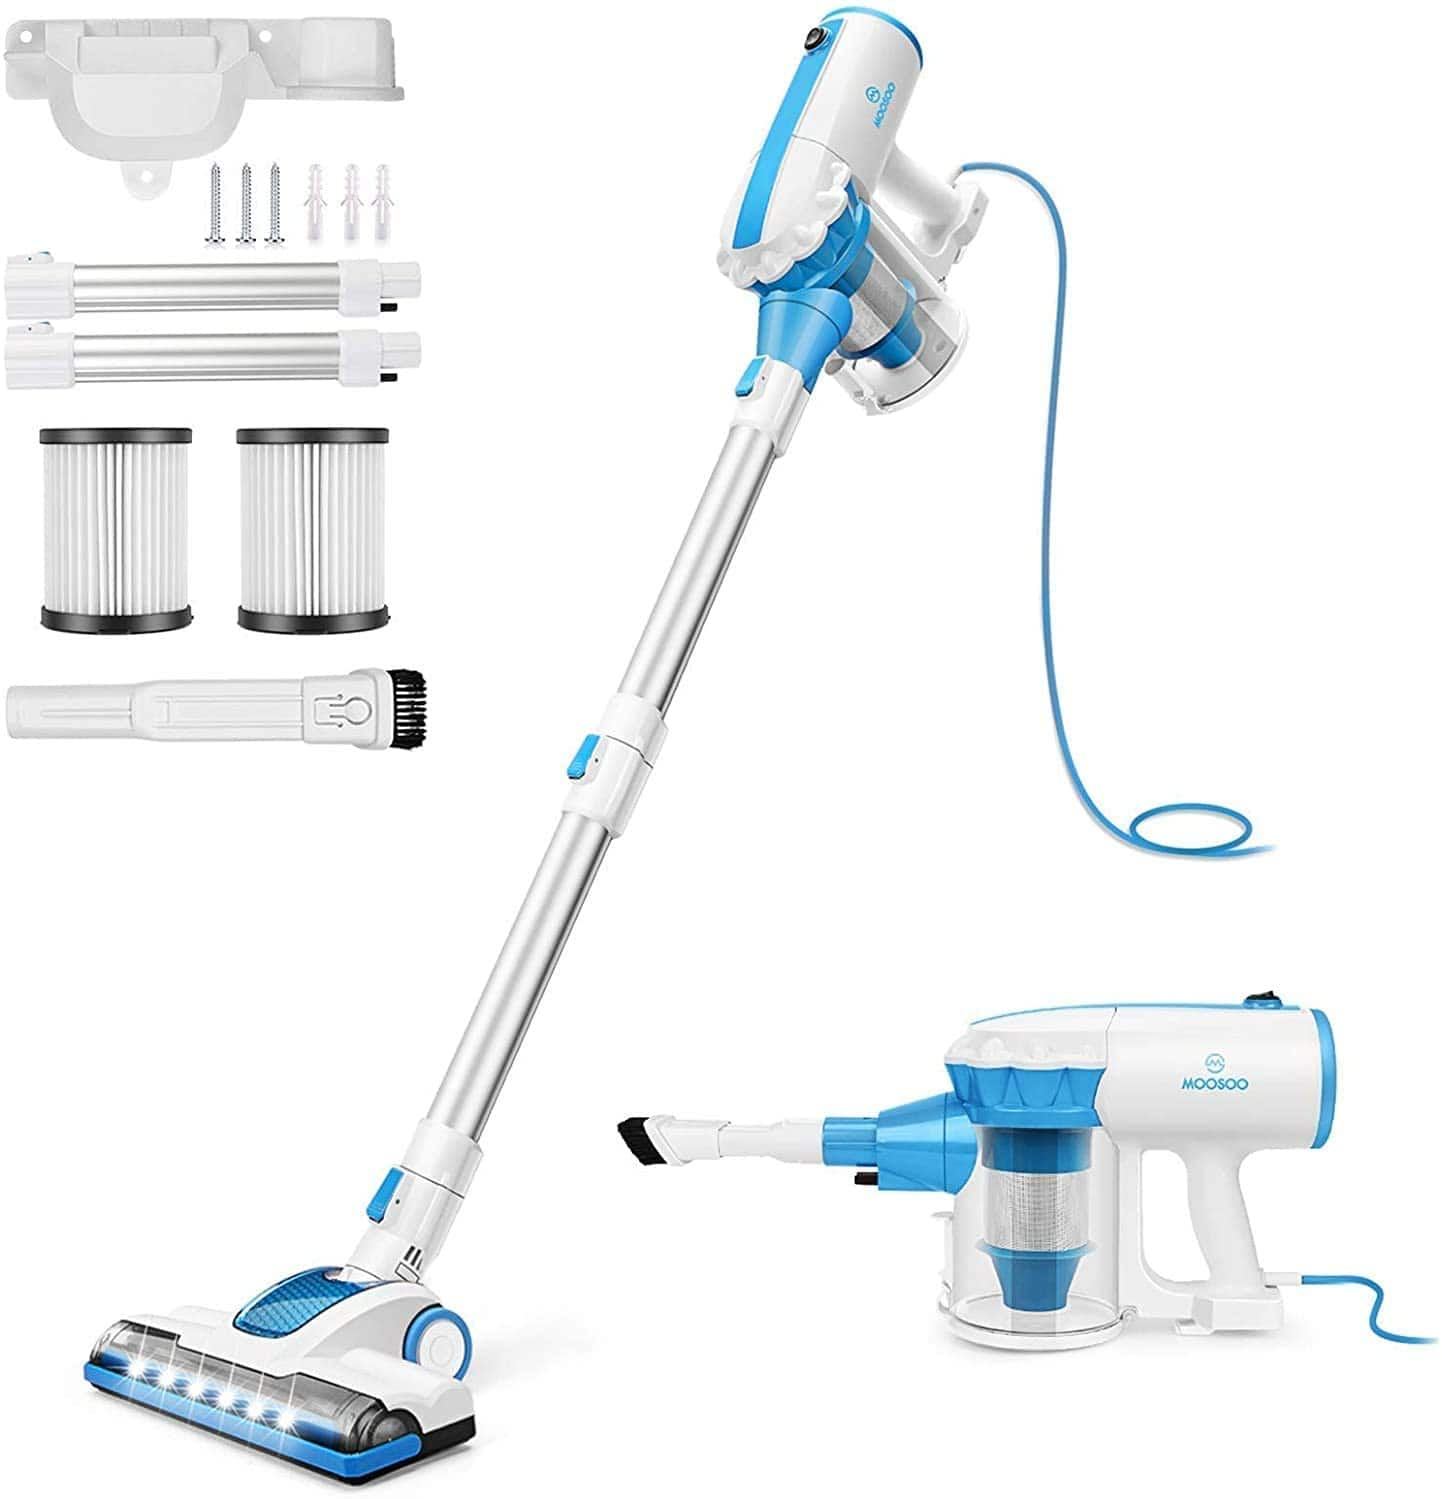 MOOSOO 4 in 1 Corded Stick Vacuum Cleaner with 2Pcs HEPA $54.98 + Free Shipping